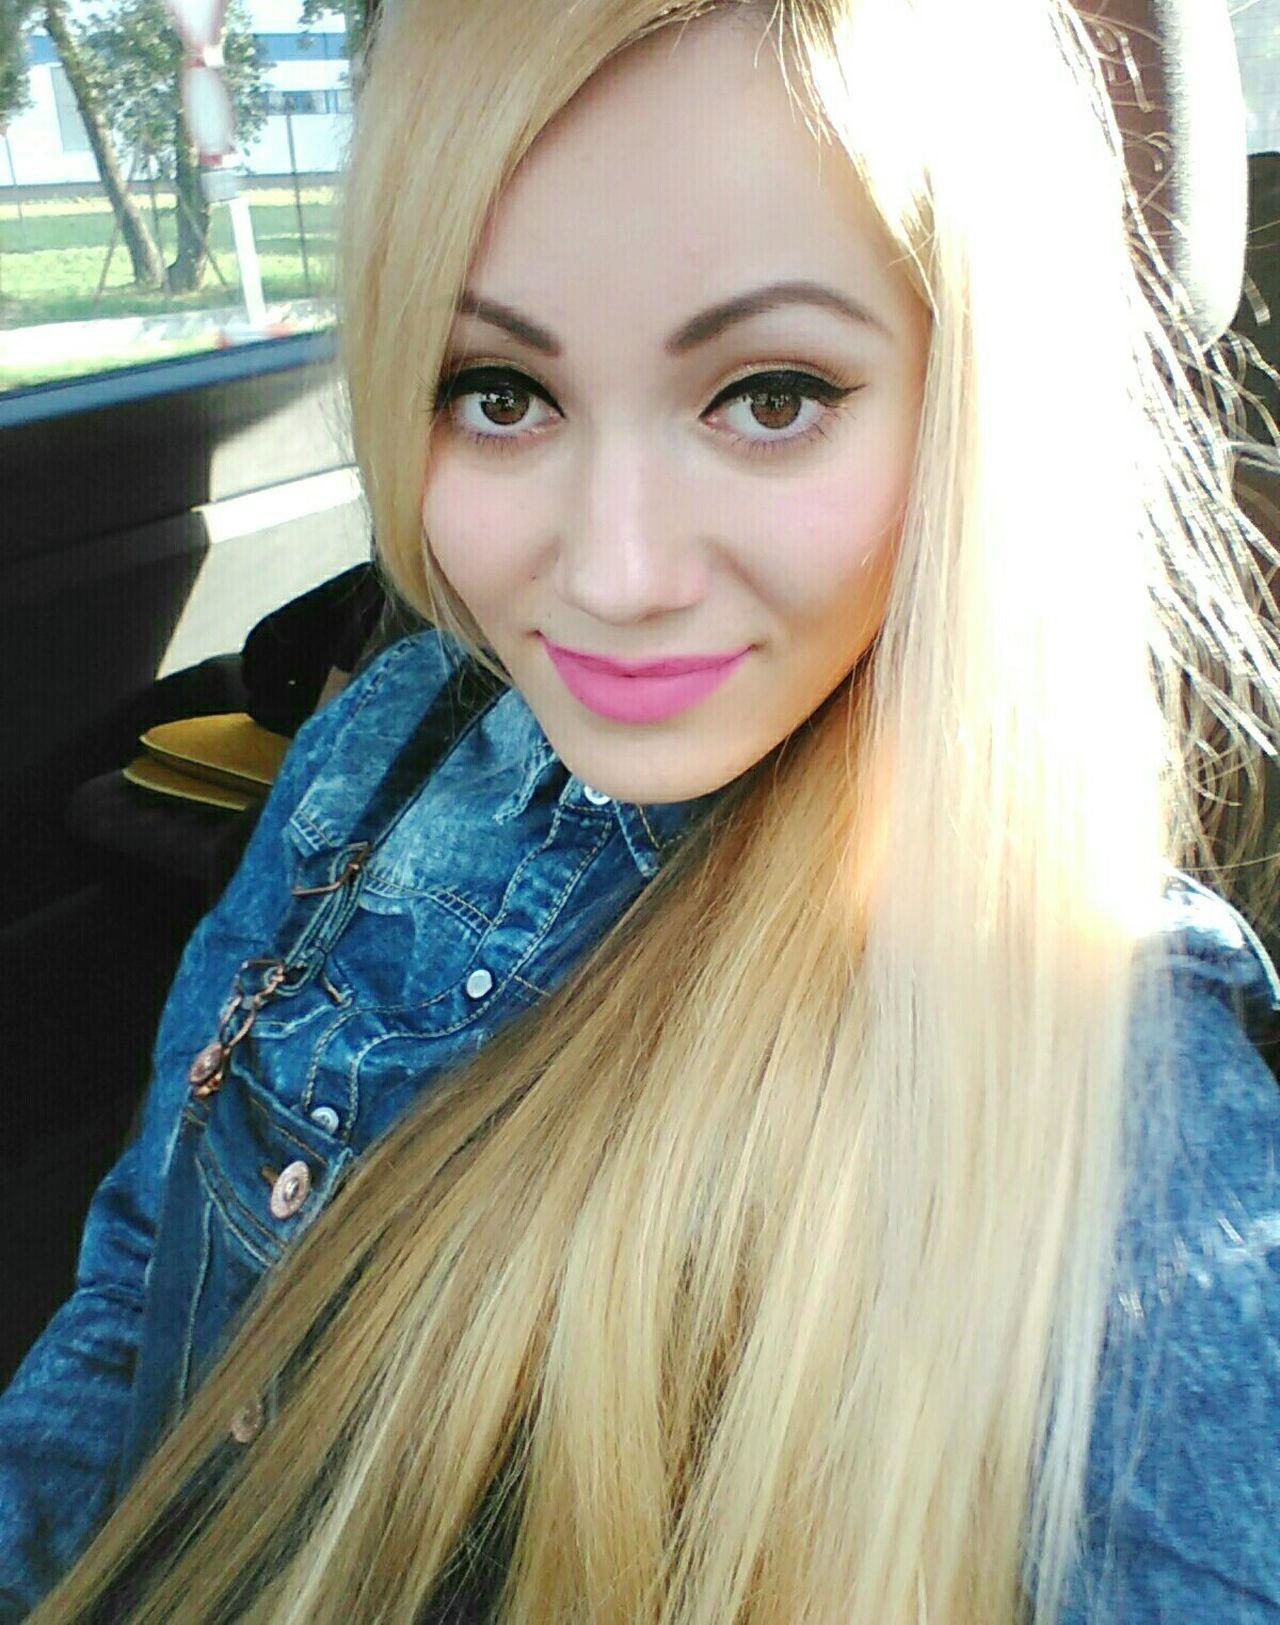 Hello World That's Me Blonde Blondehairdontcare Blondegirl JeansWear Pinklipstick Smile Selfportrait Barbiegirl Barbieworld Selfphotography Sunisshining Hungariangirl